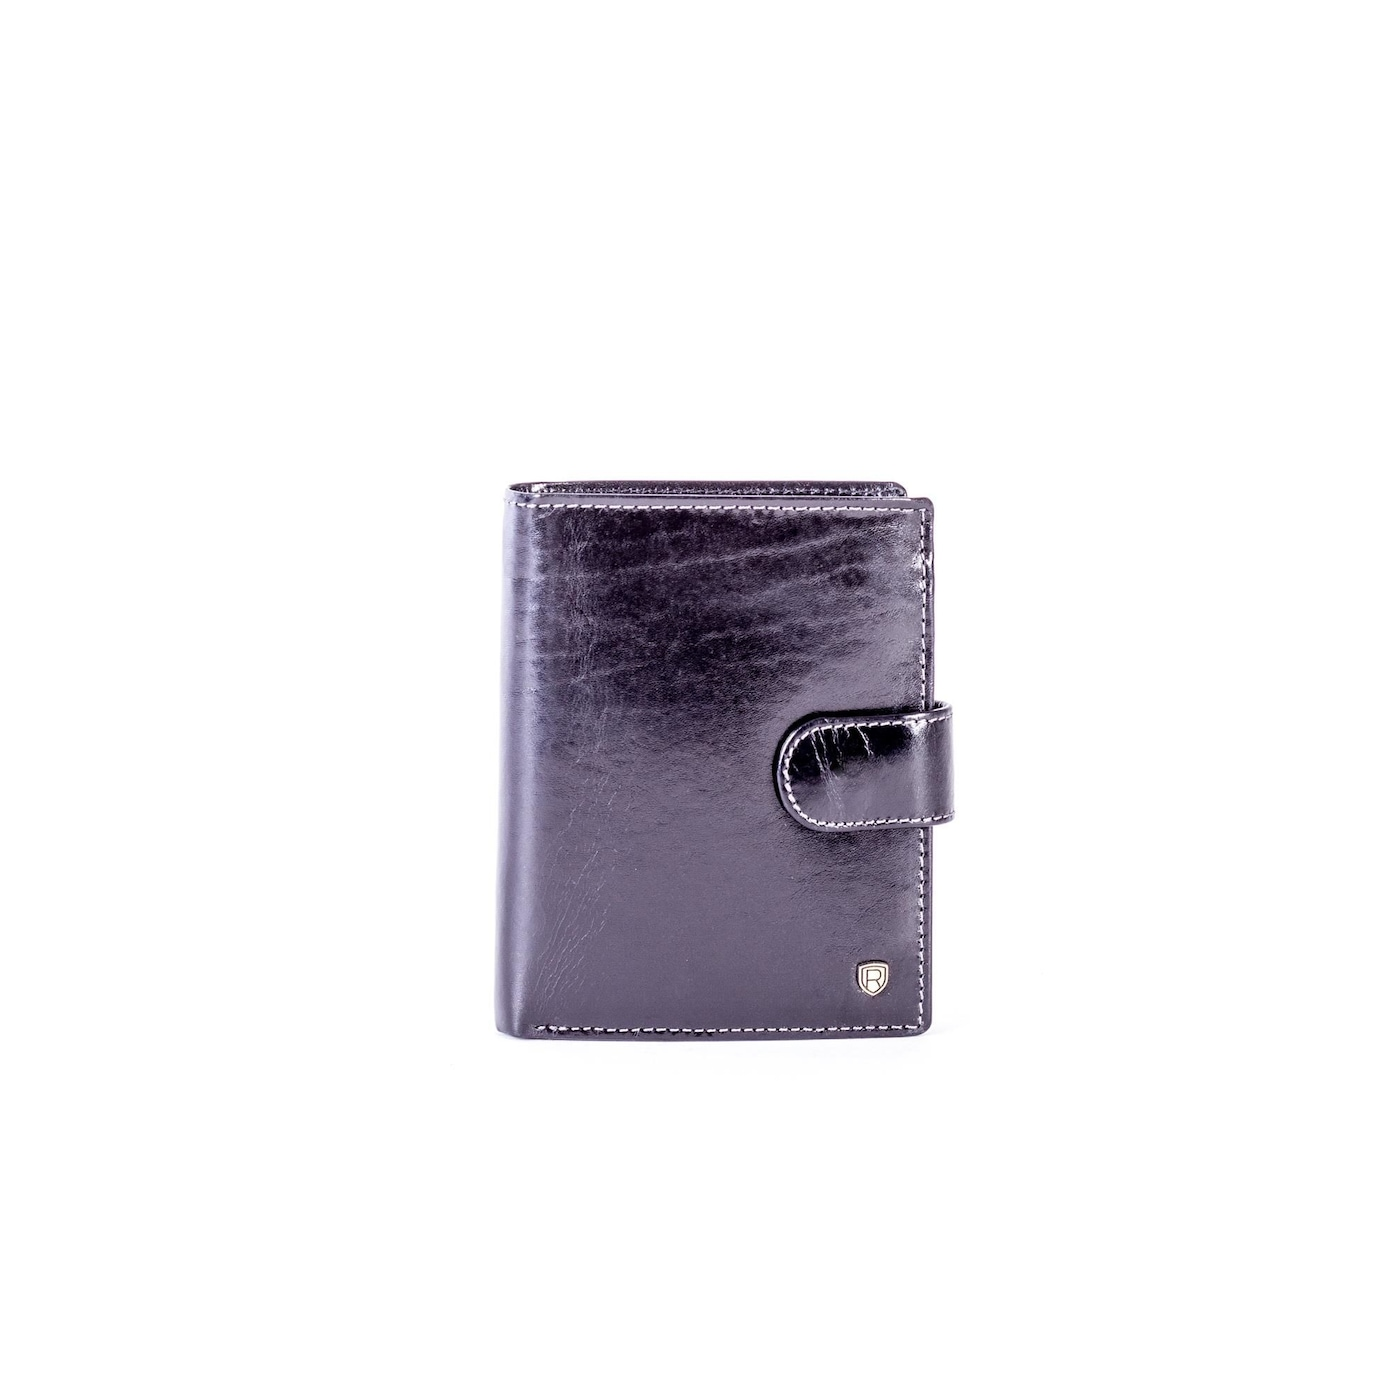 Black leather wallet with a latch